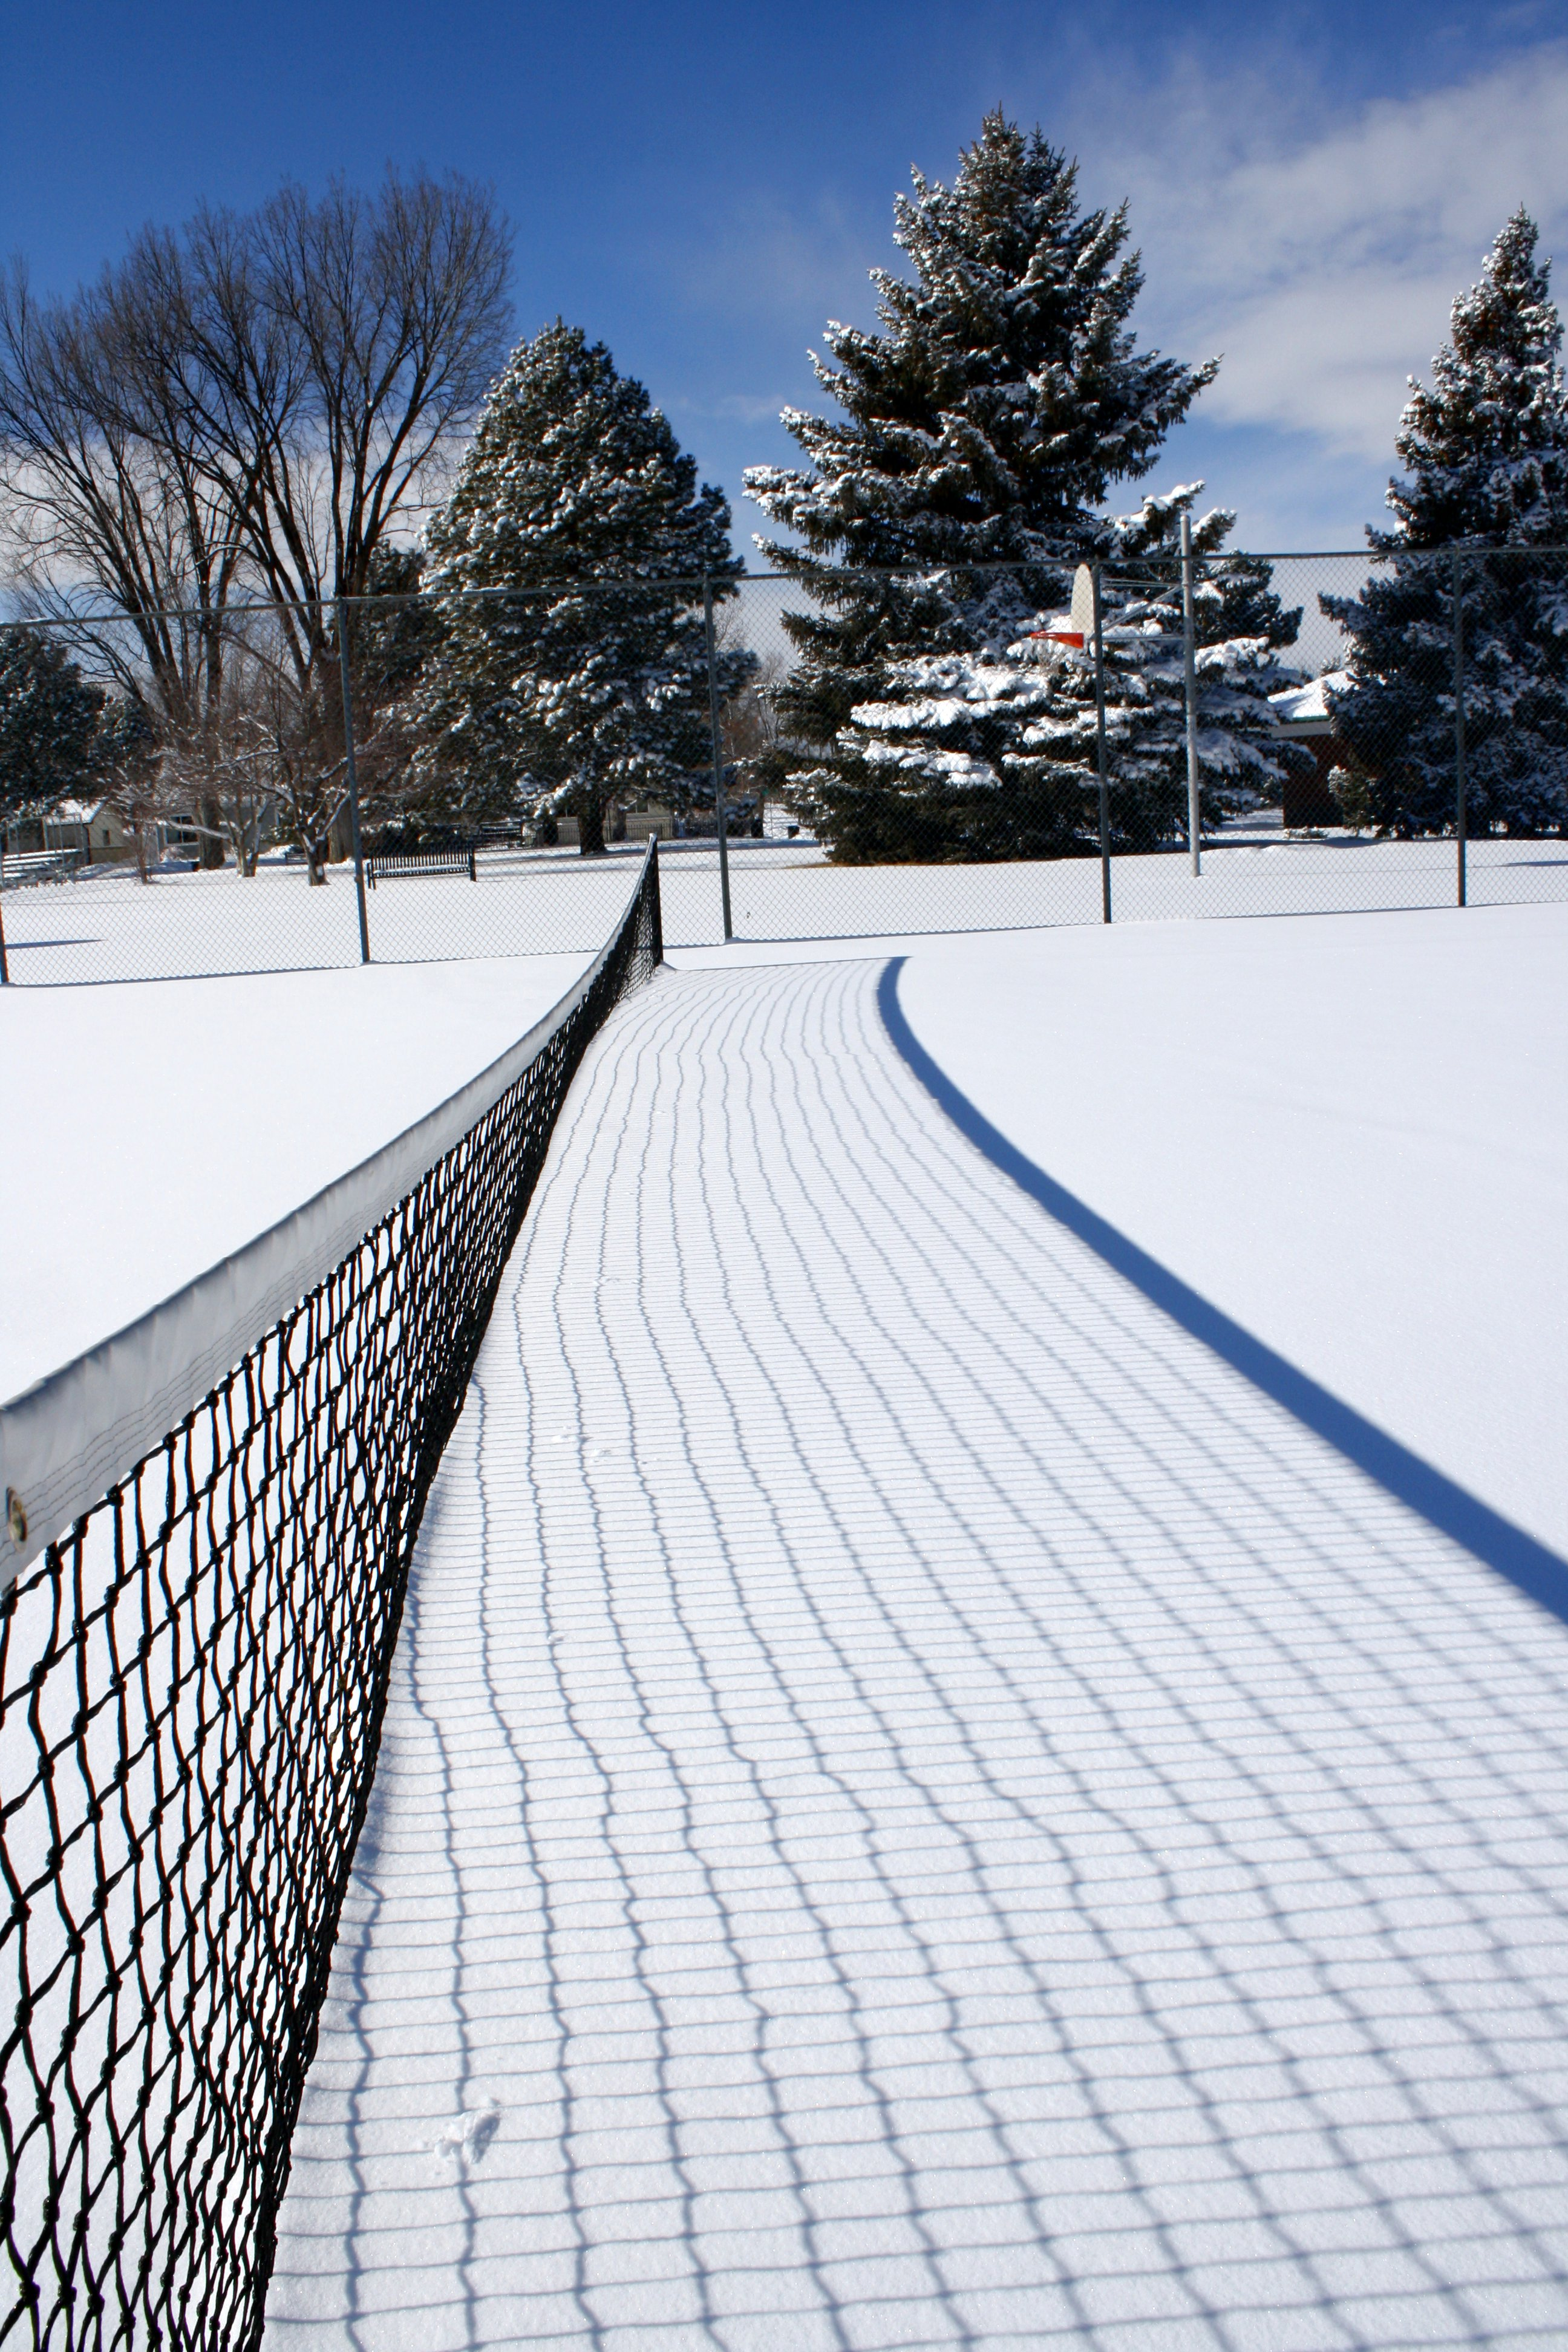 Tennis Court Net Buried In Snow Picture Free Photograph Photos